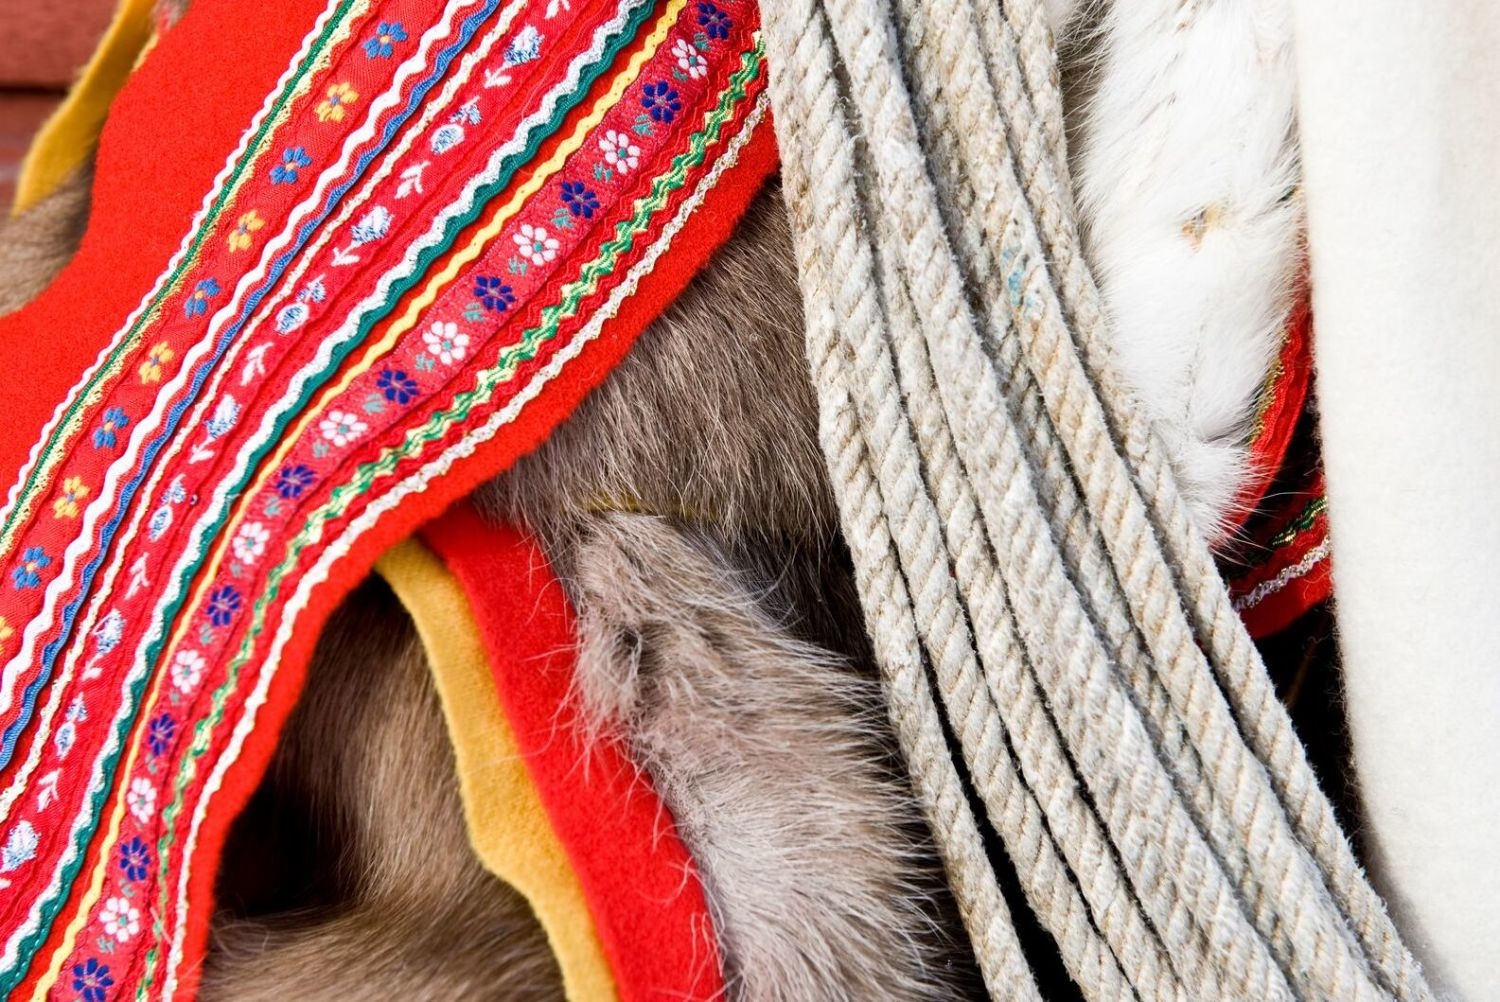 Details from sami clothes. Photo: Terje Rakke, visitnorway.com